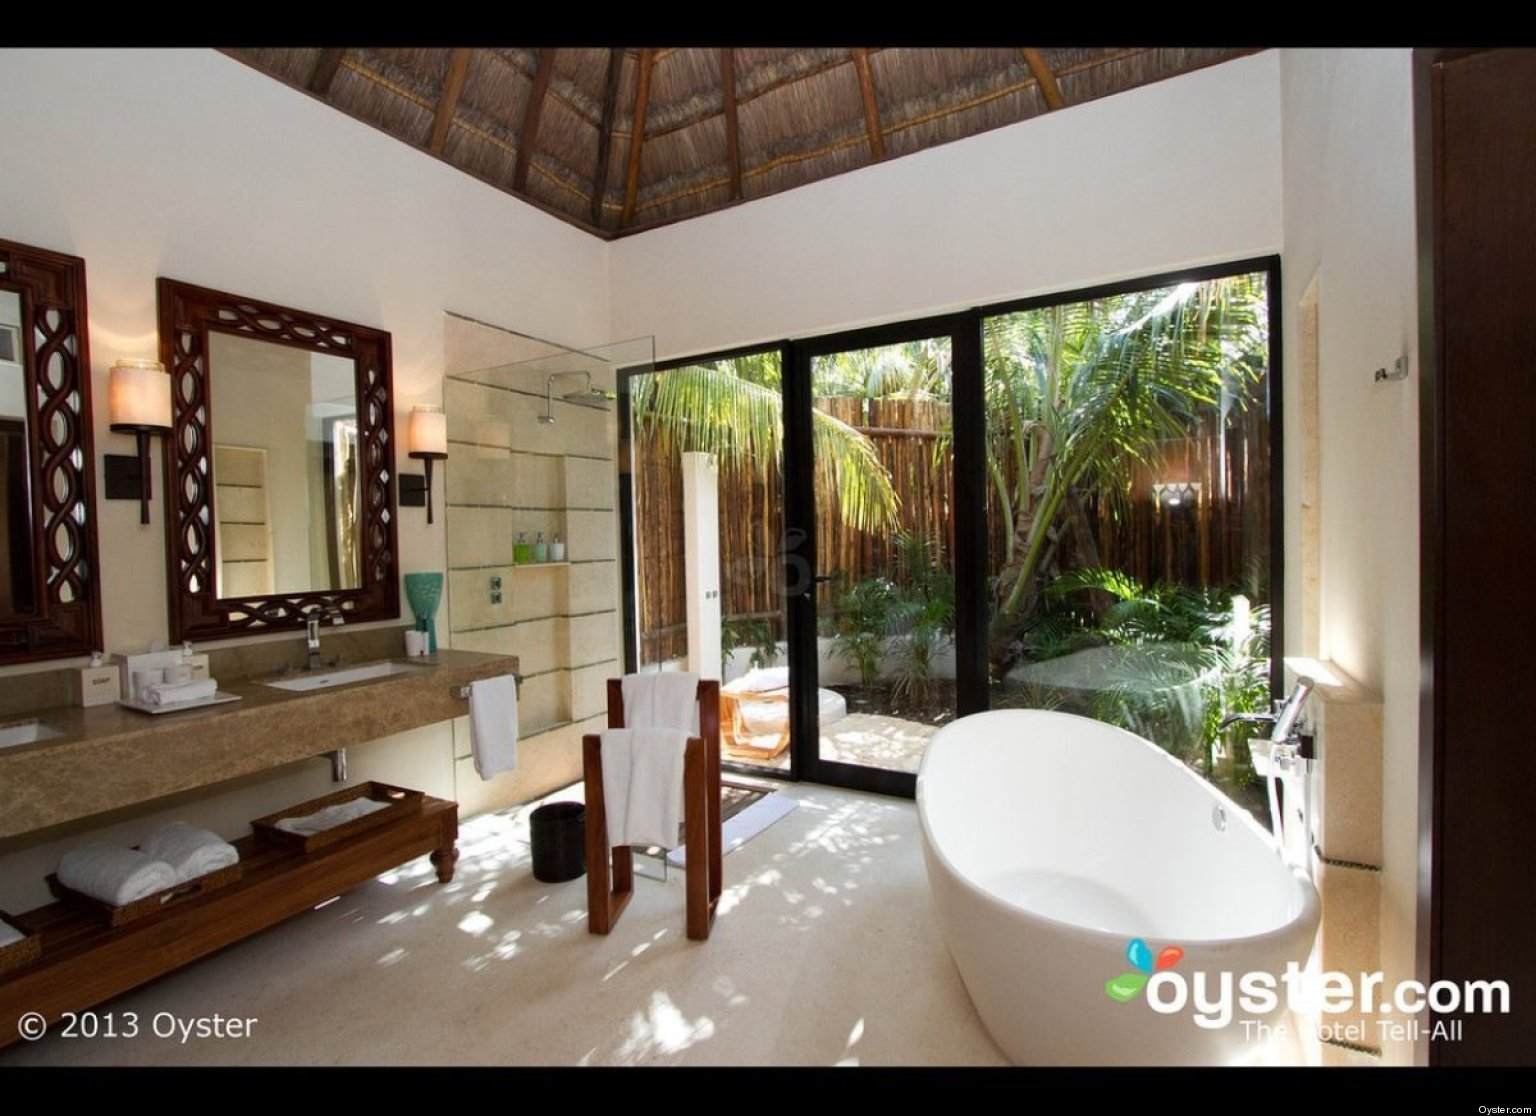 Luxury Bathrooms In Hotels the sexiest hotel bathrooms in the caribbean (photos) | huffpost